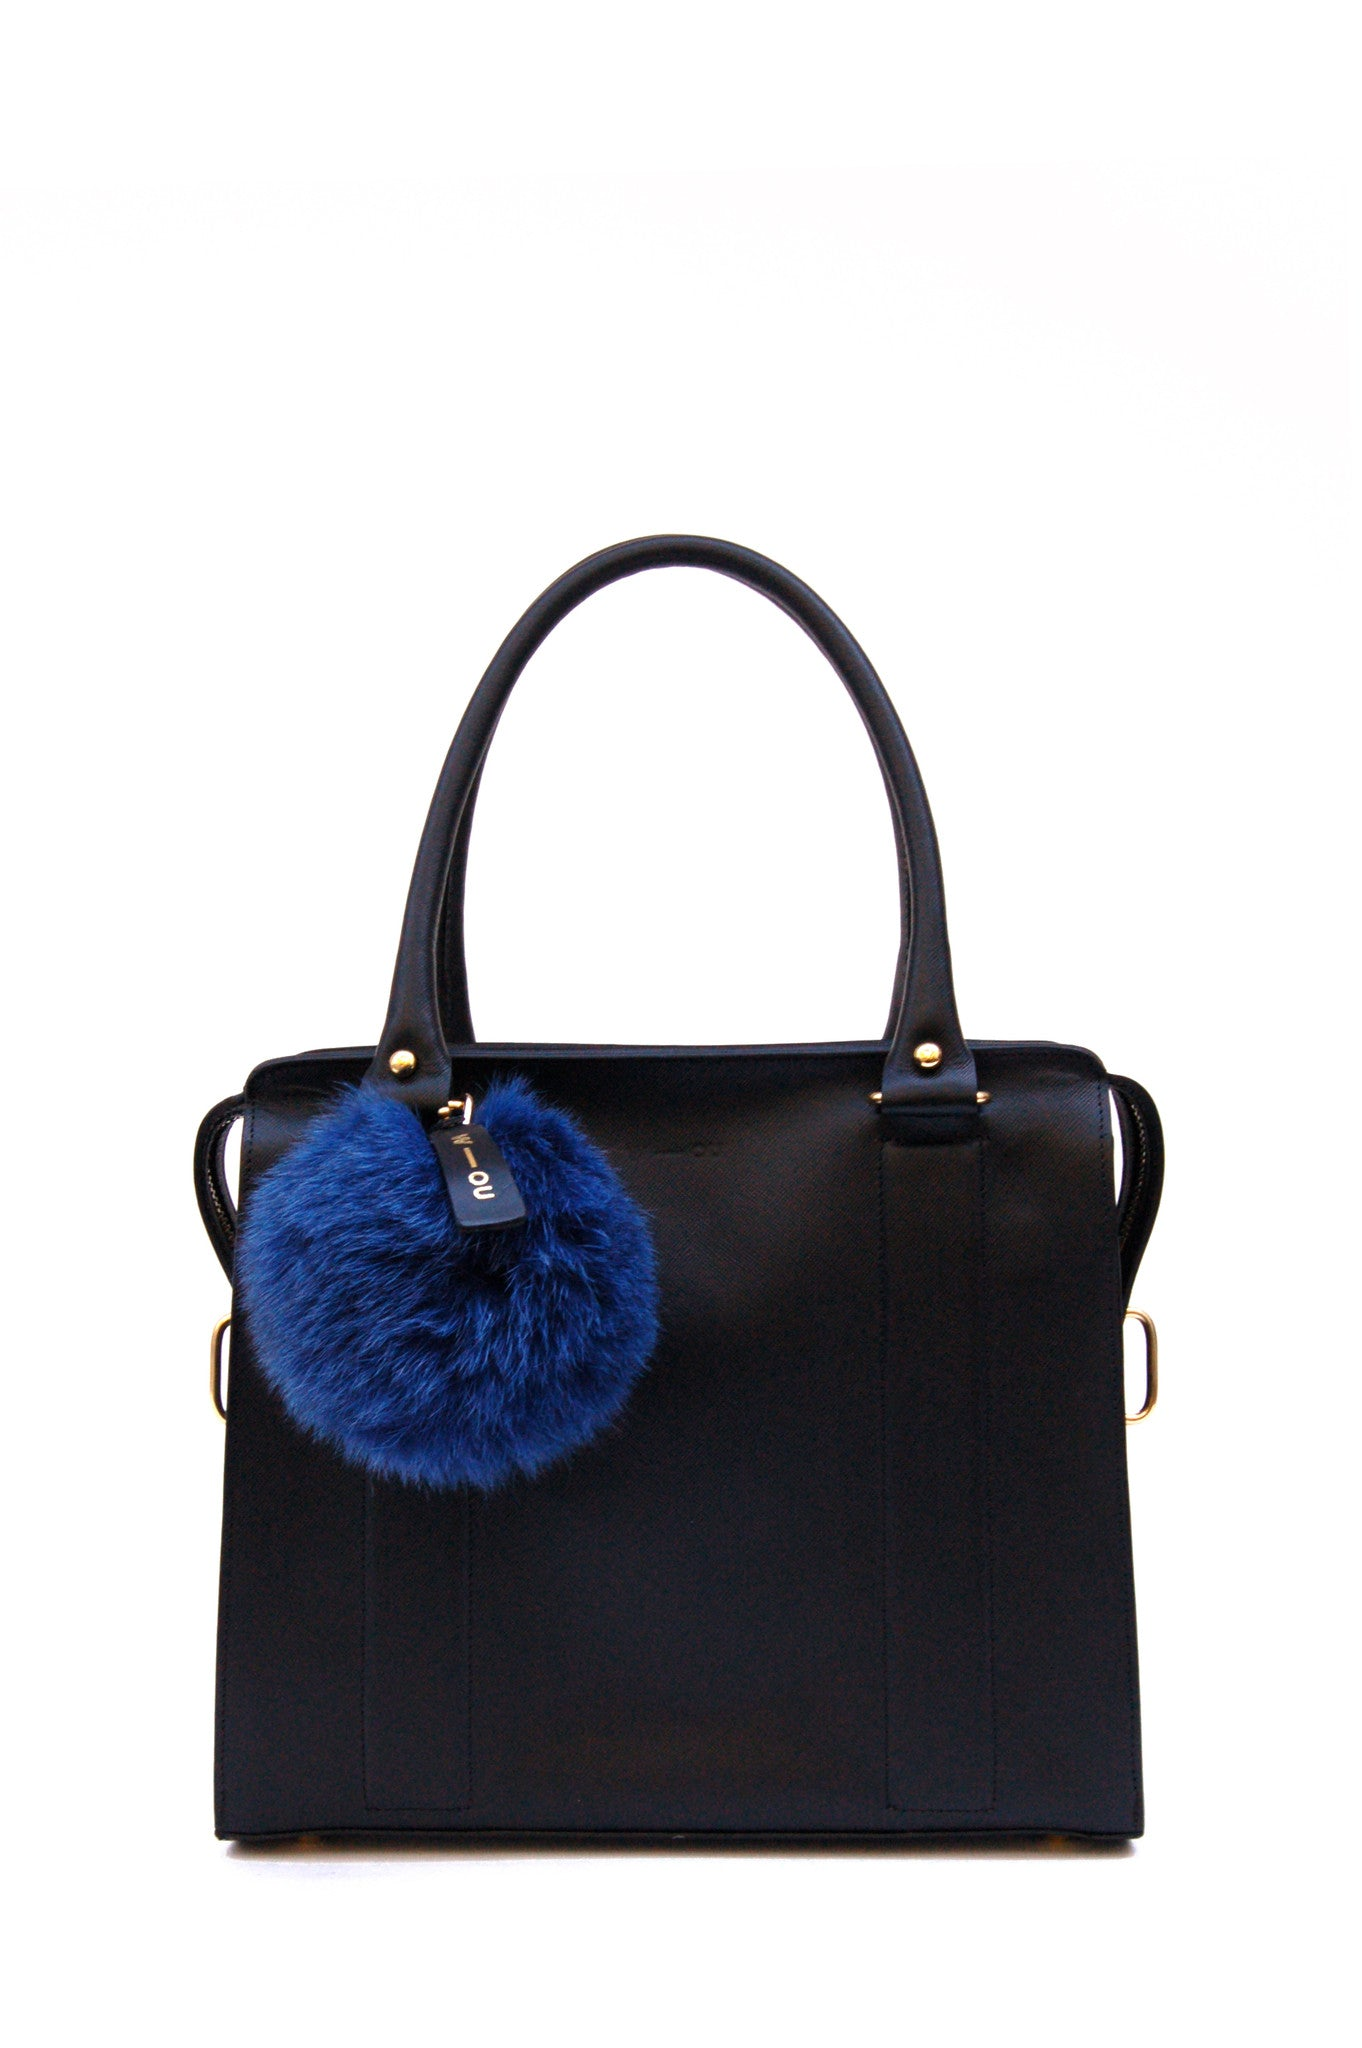 Wendee Ou: Raccoon fur pom pom bag charm teal | Accessories > Key rings,Accessories -  Hiphunters Shop